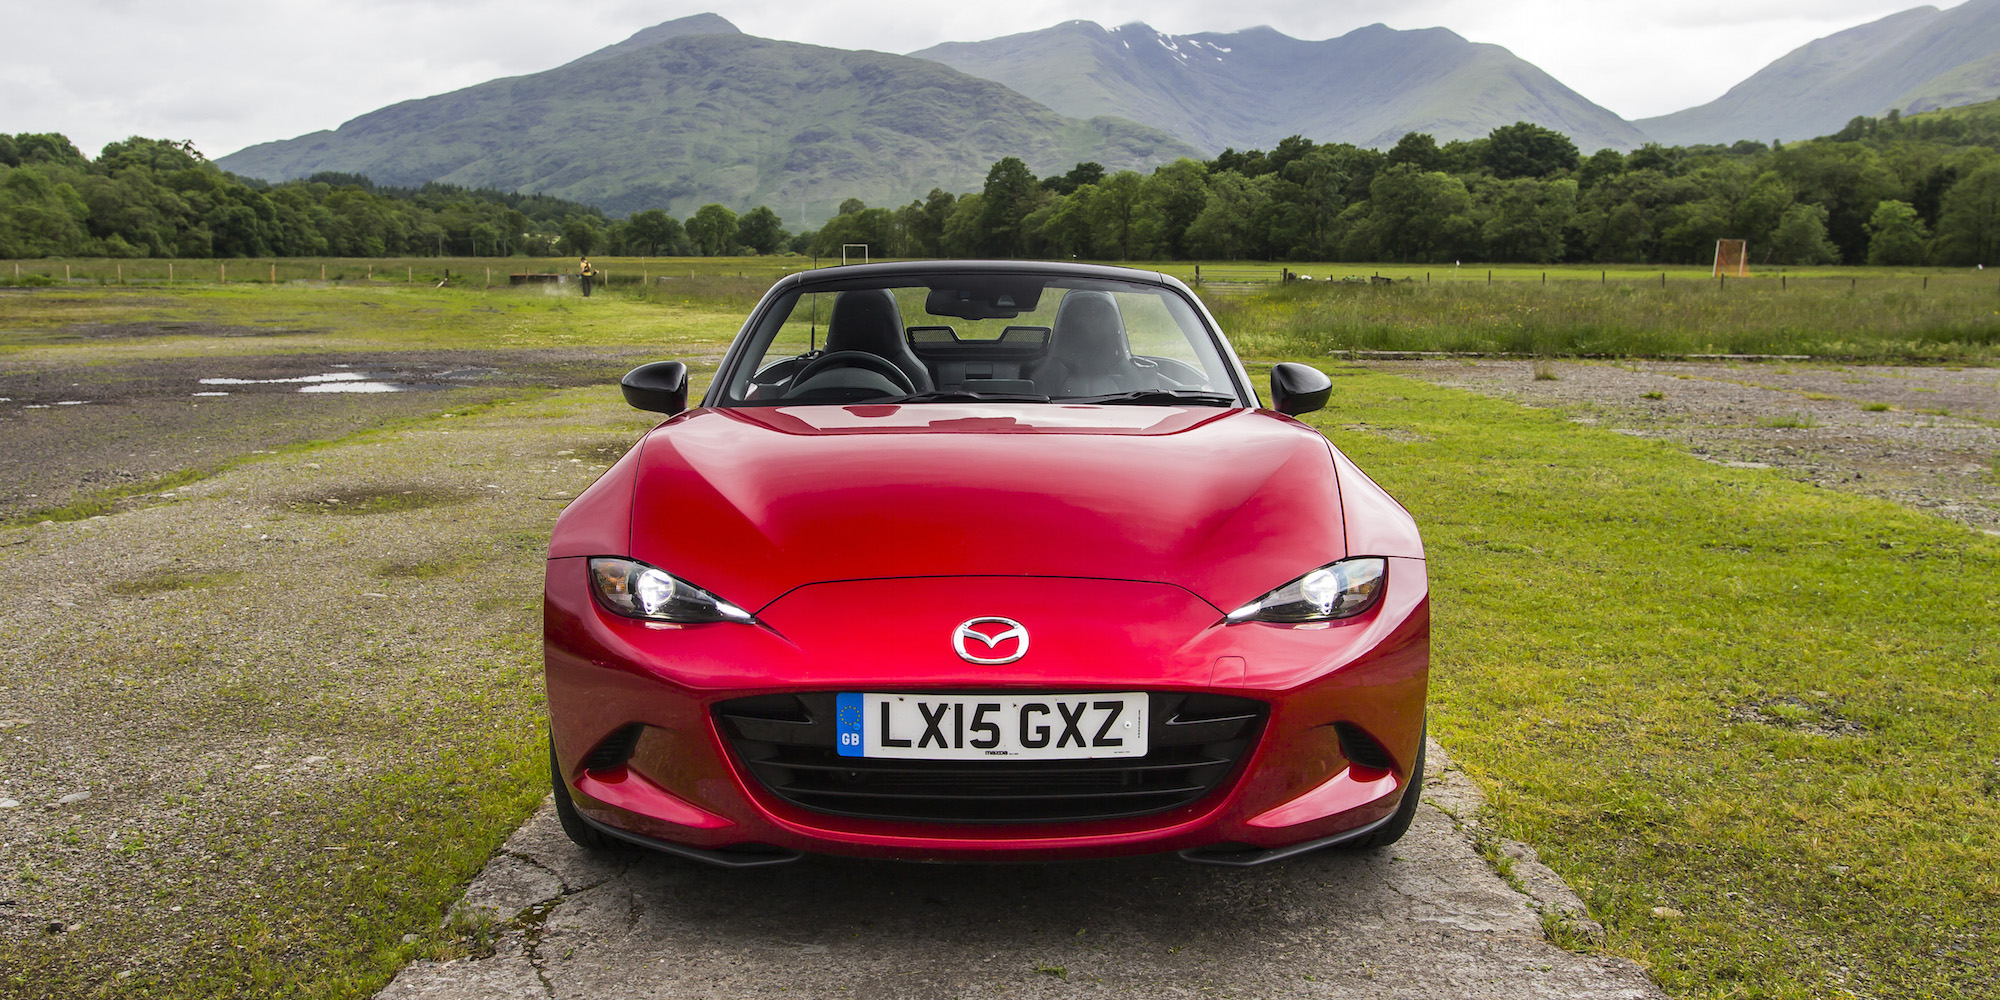 2016 Mazda Mx 5 Front End Design (View 18 of 31)